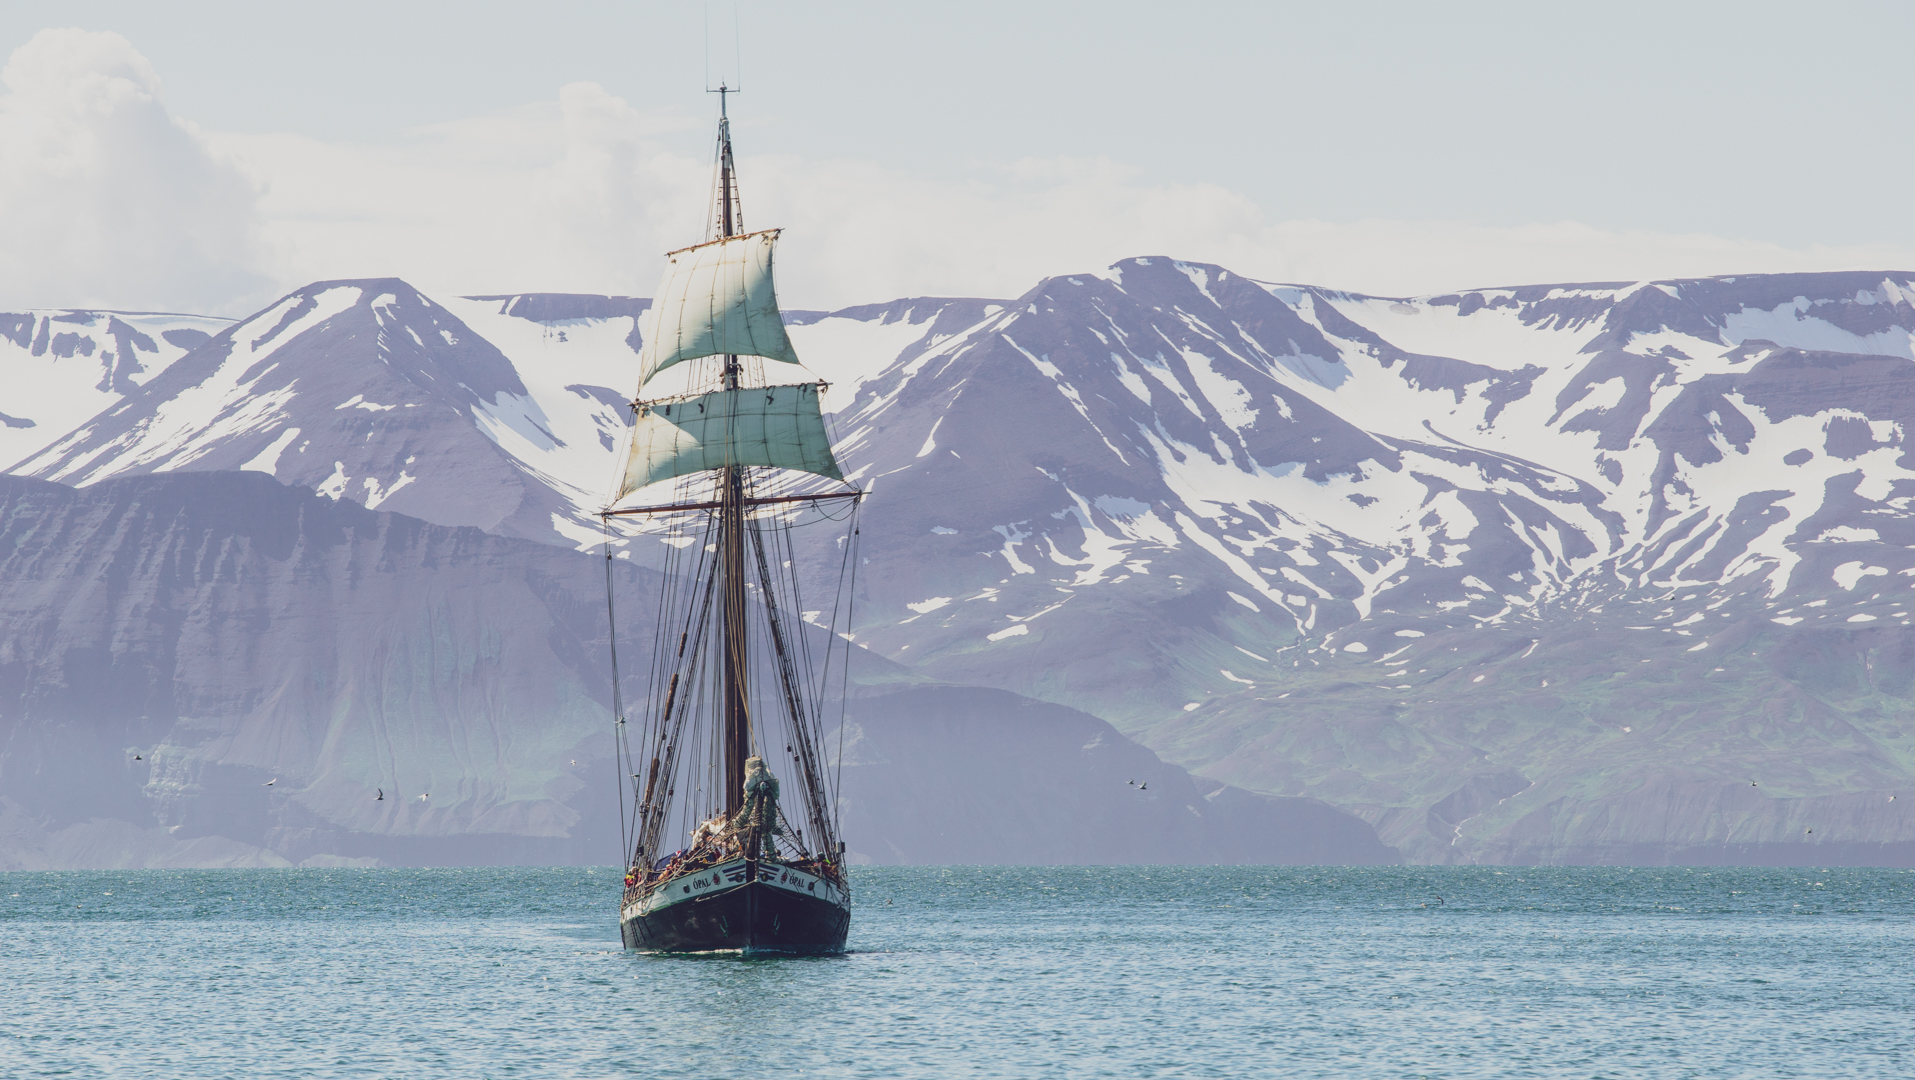 Sail boat in North Iceland